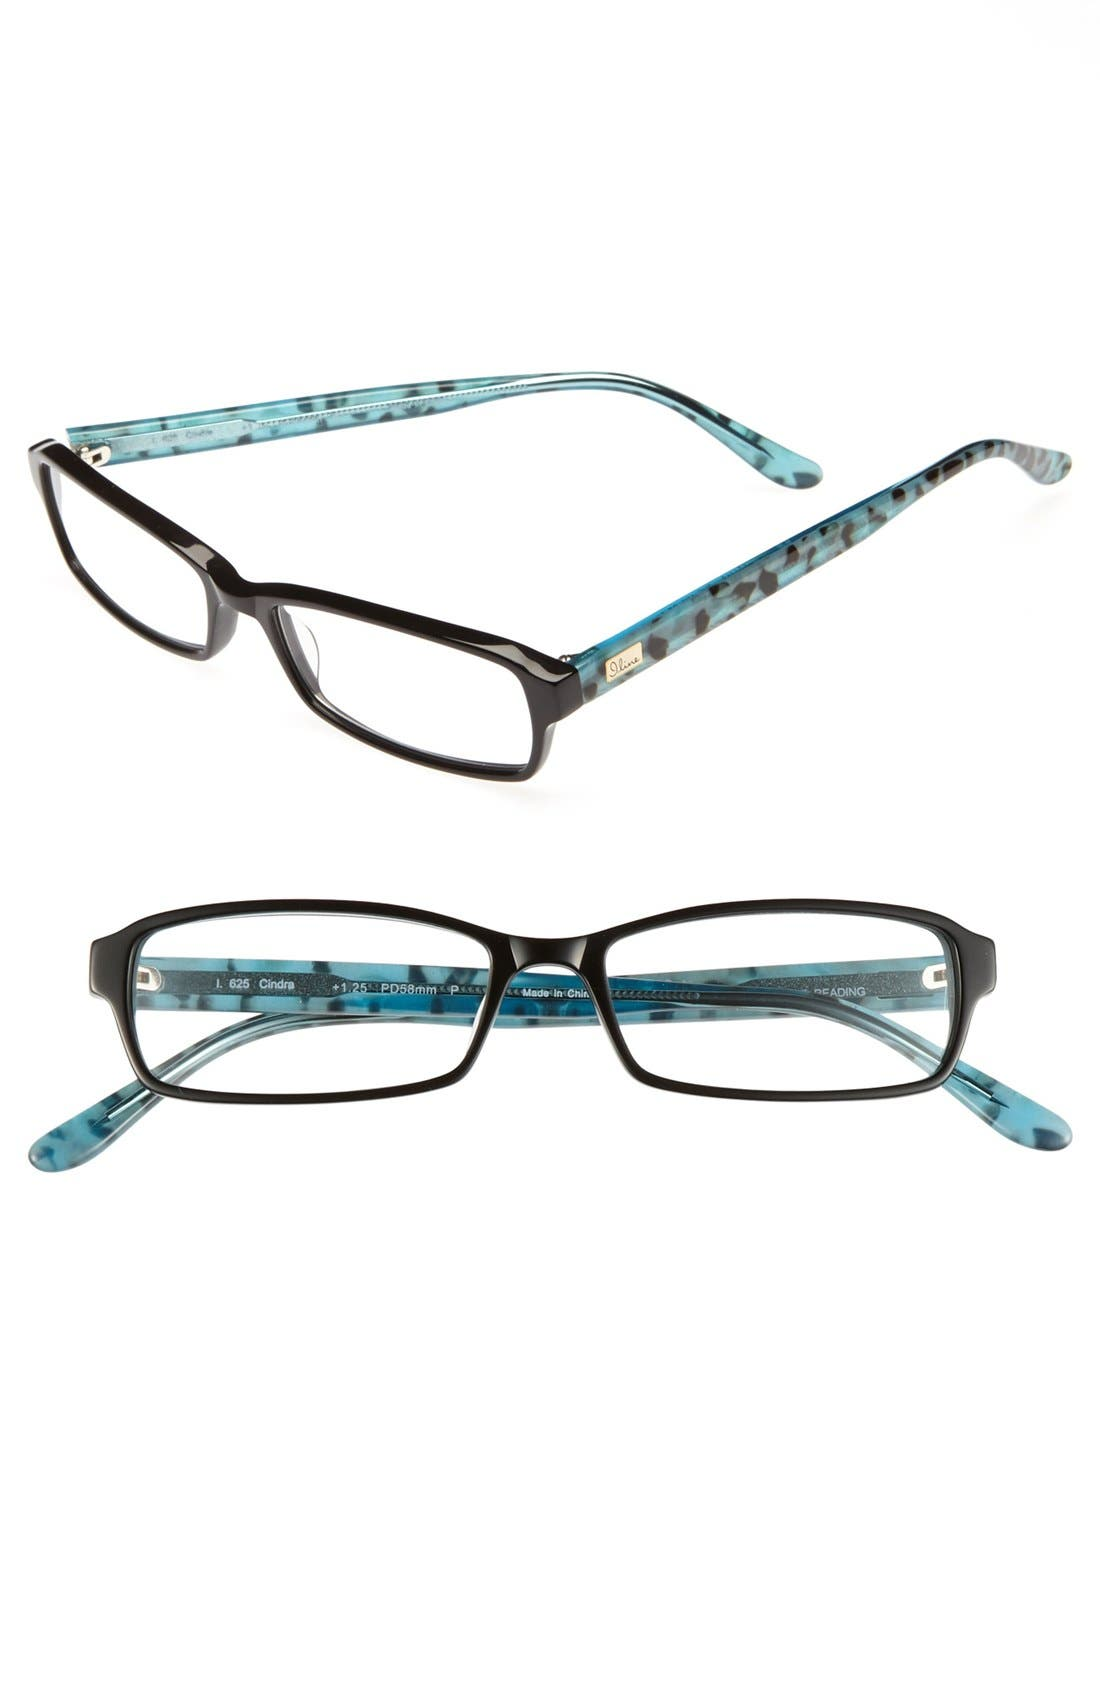 Alternate Image 1 Selected - I Line Eyewear 'Cindra' 52mm Reading Glasses (2 for $88)